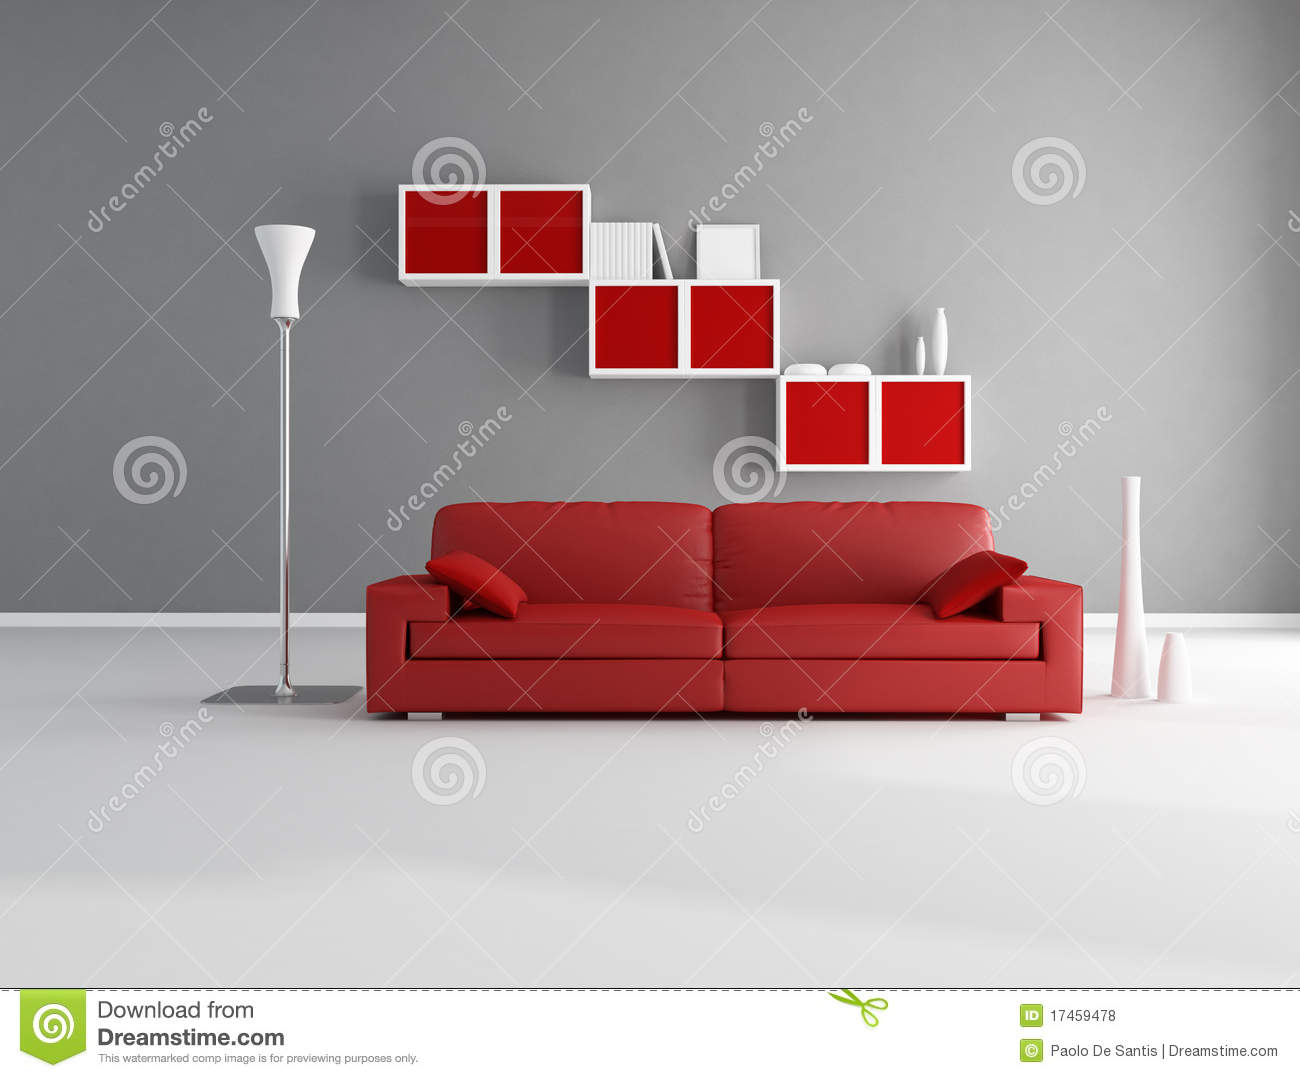 salon rouge et gris illustration stock illustration du. Black Bedroom Furniture Sets. Home Design Ideas